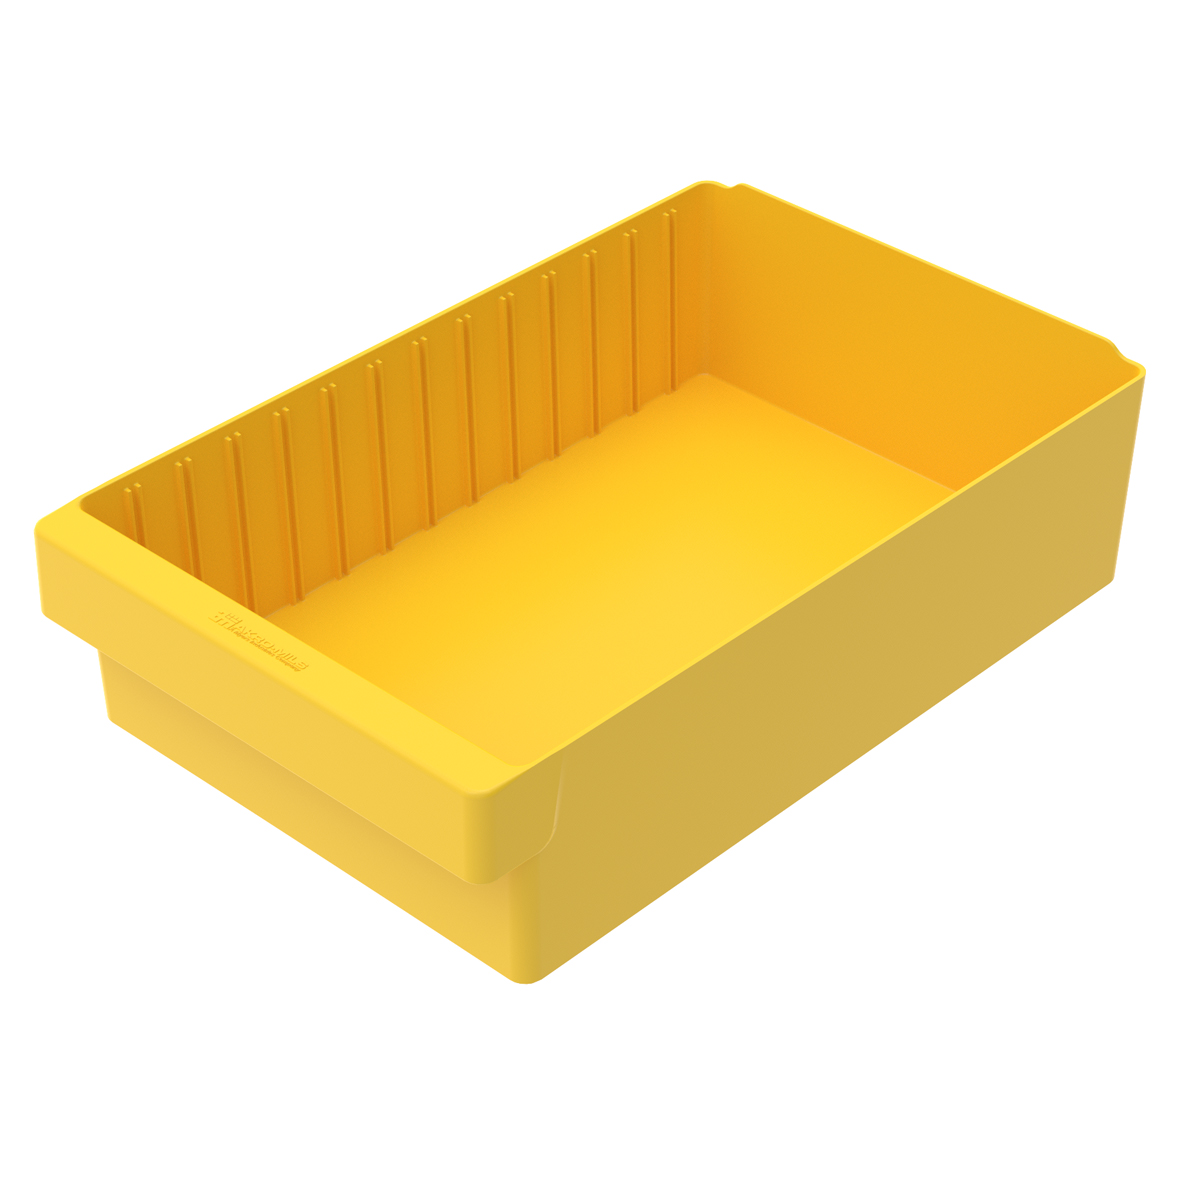 AkroDrawer 17-5/8 x 11-1/8 x 4-5/8, Yellow (31118YEL).  This item sold in carton quantities of 4.